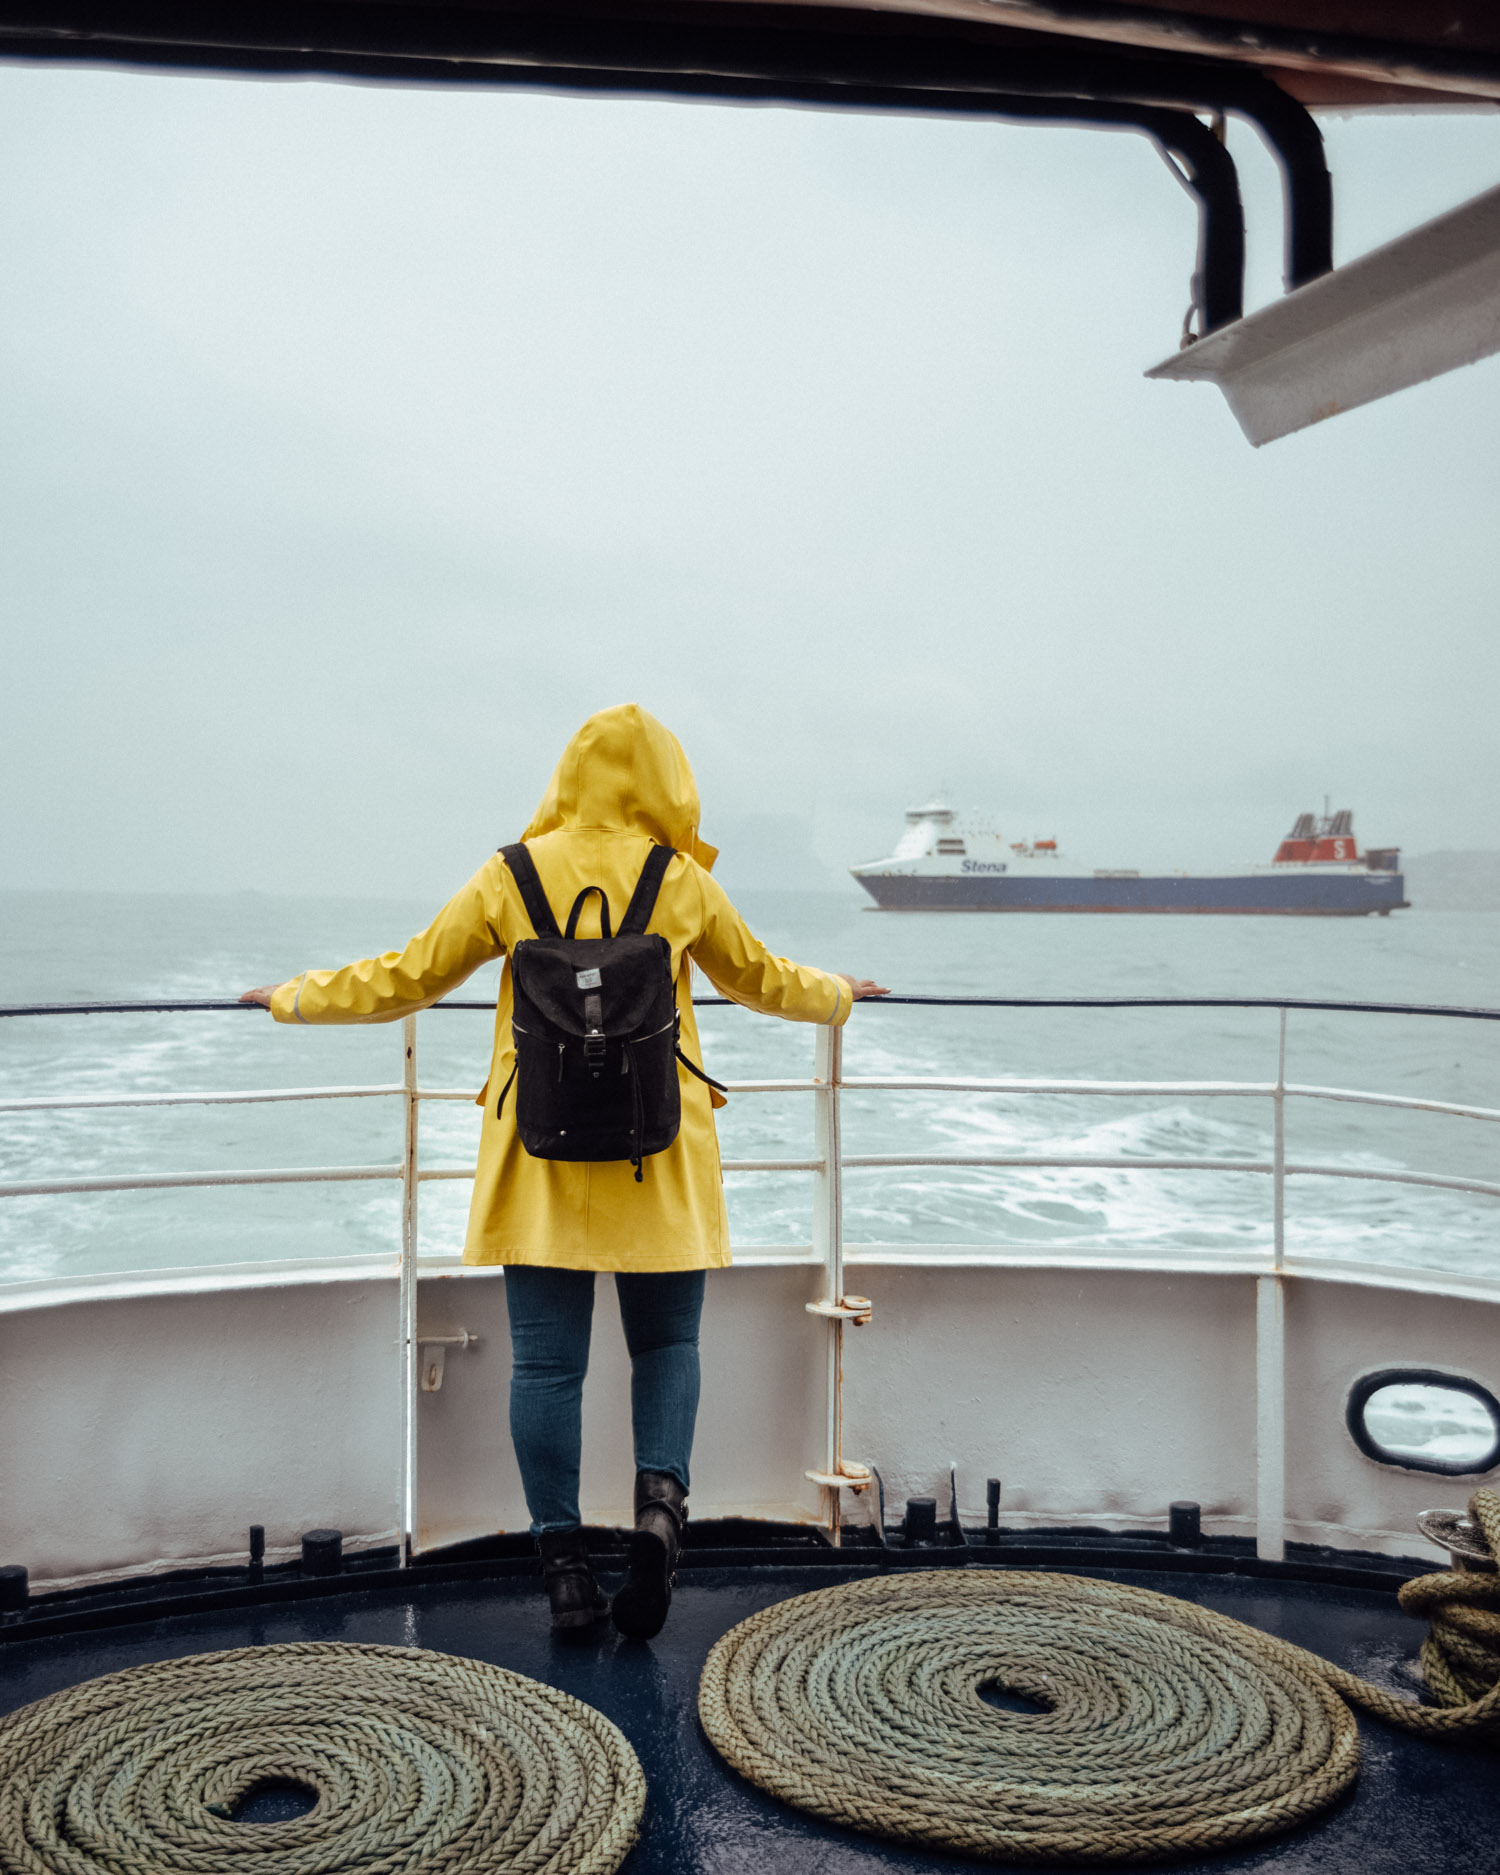 Dublin Bay Cruises to Howth |Woman with yellow raincoat standing on a boat in the rain